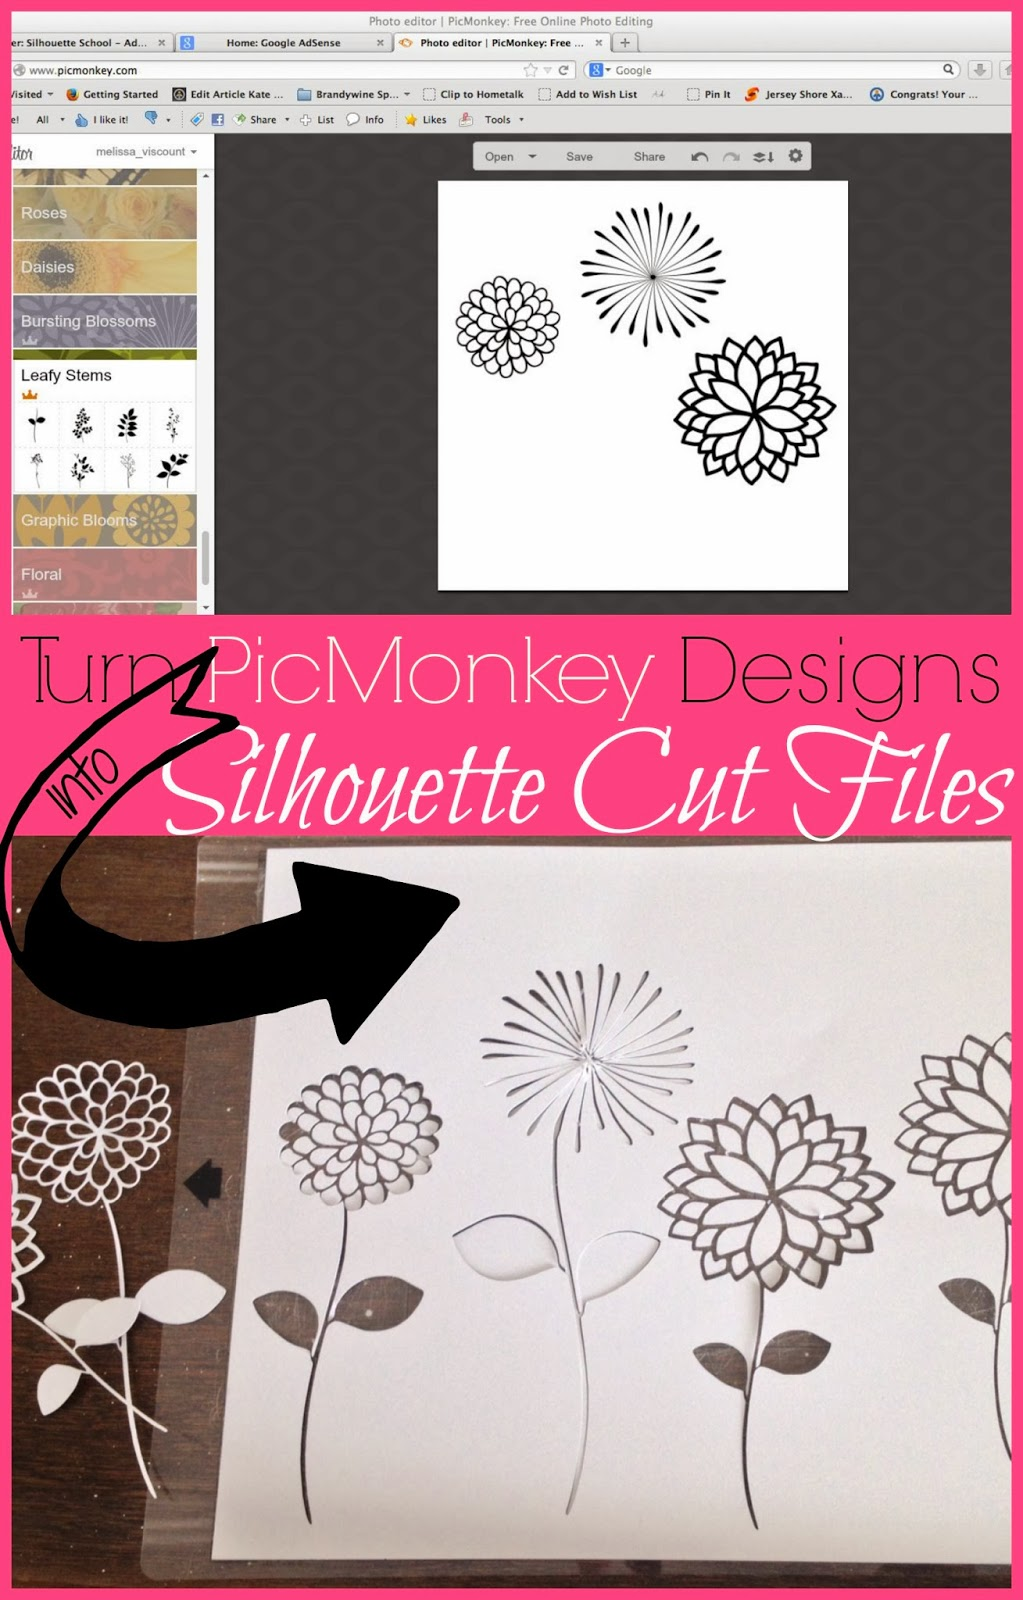 Silhouette, tips, tricks, shortcuts, work arounds